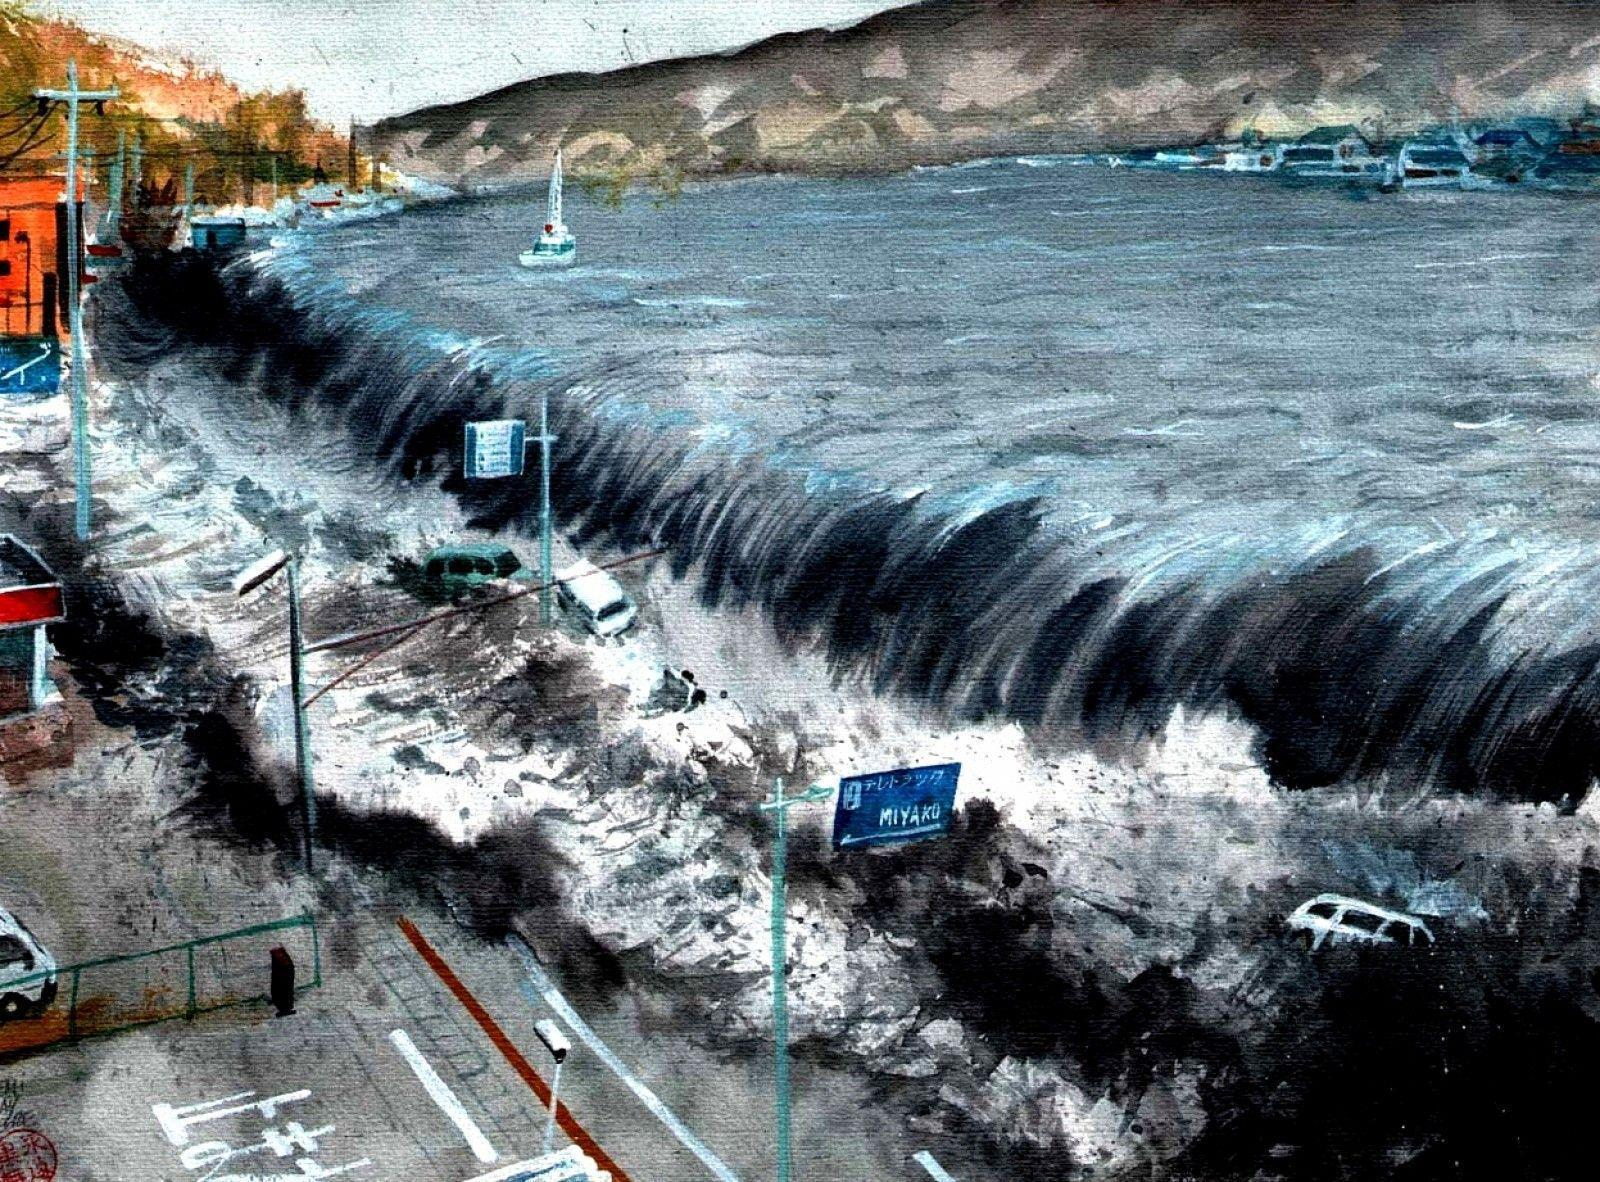 Tsunami Pictures HD Wallpaper 4 - Hd Wallpapers